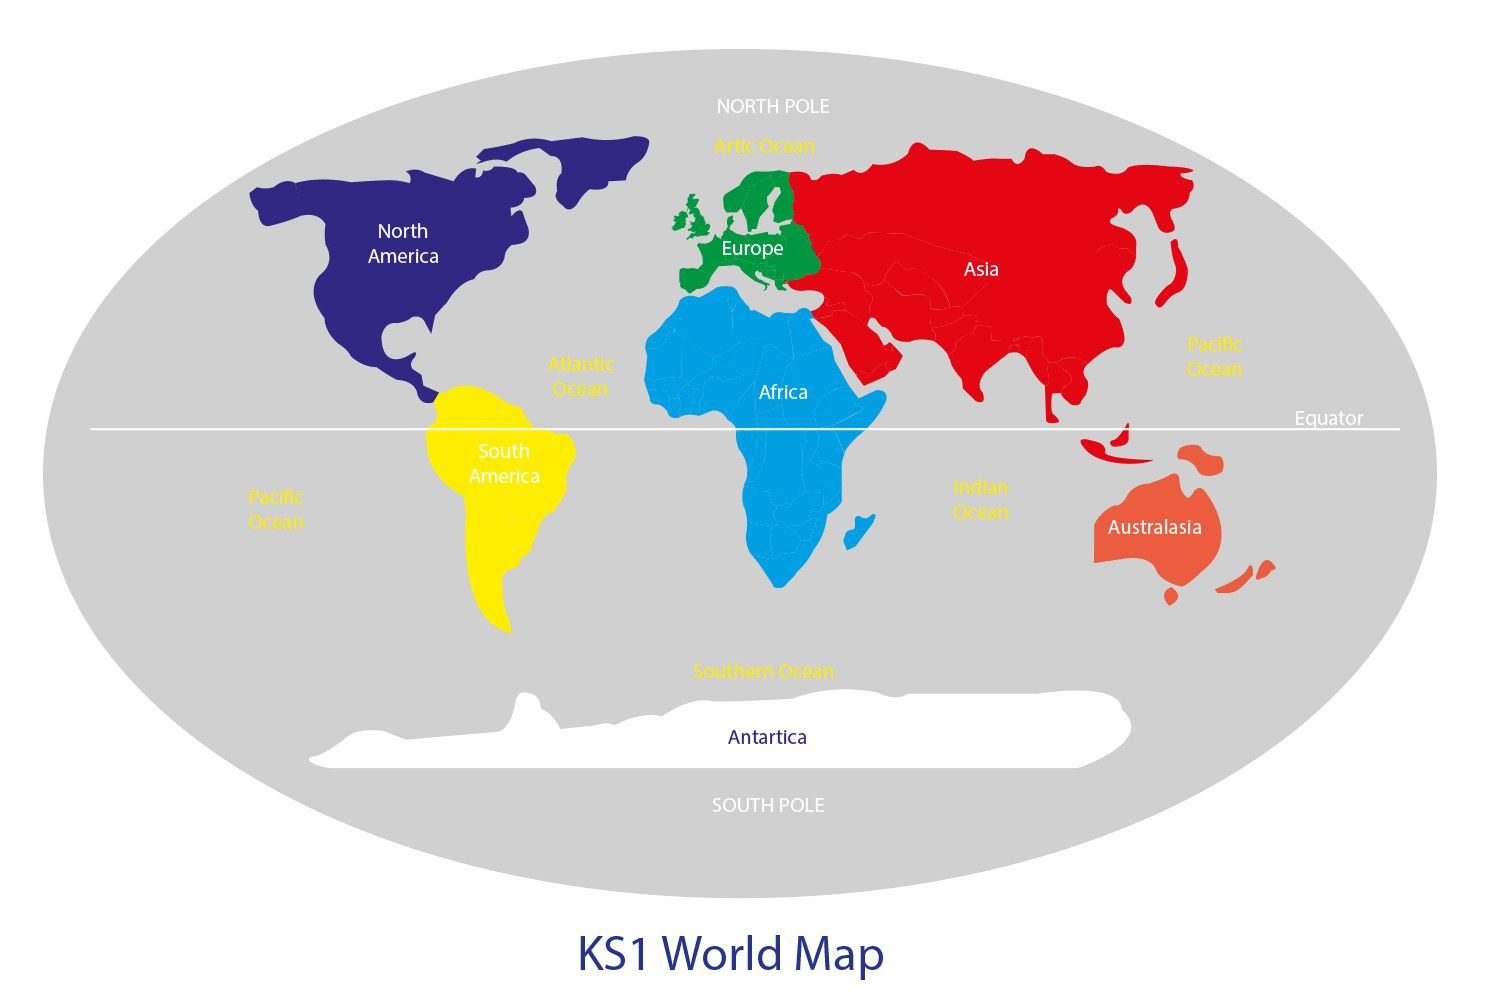 Ks1 world map with continentsease visit out website www ks1 world map with continentsease visit out website first4playgrounds gumiabroncs Choice Image